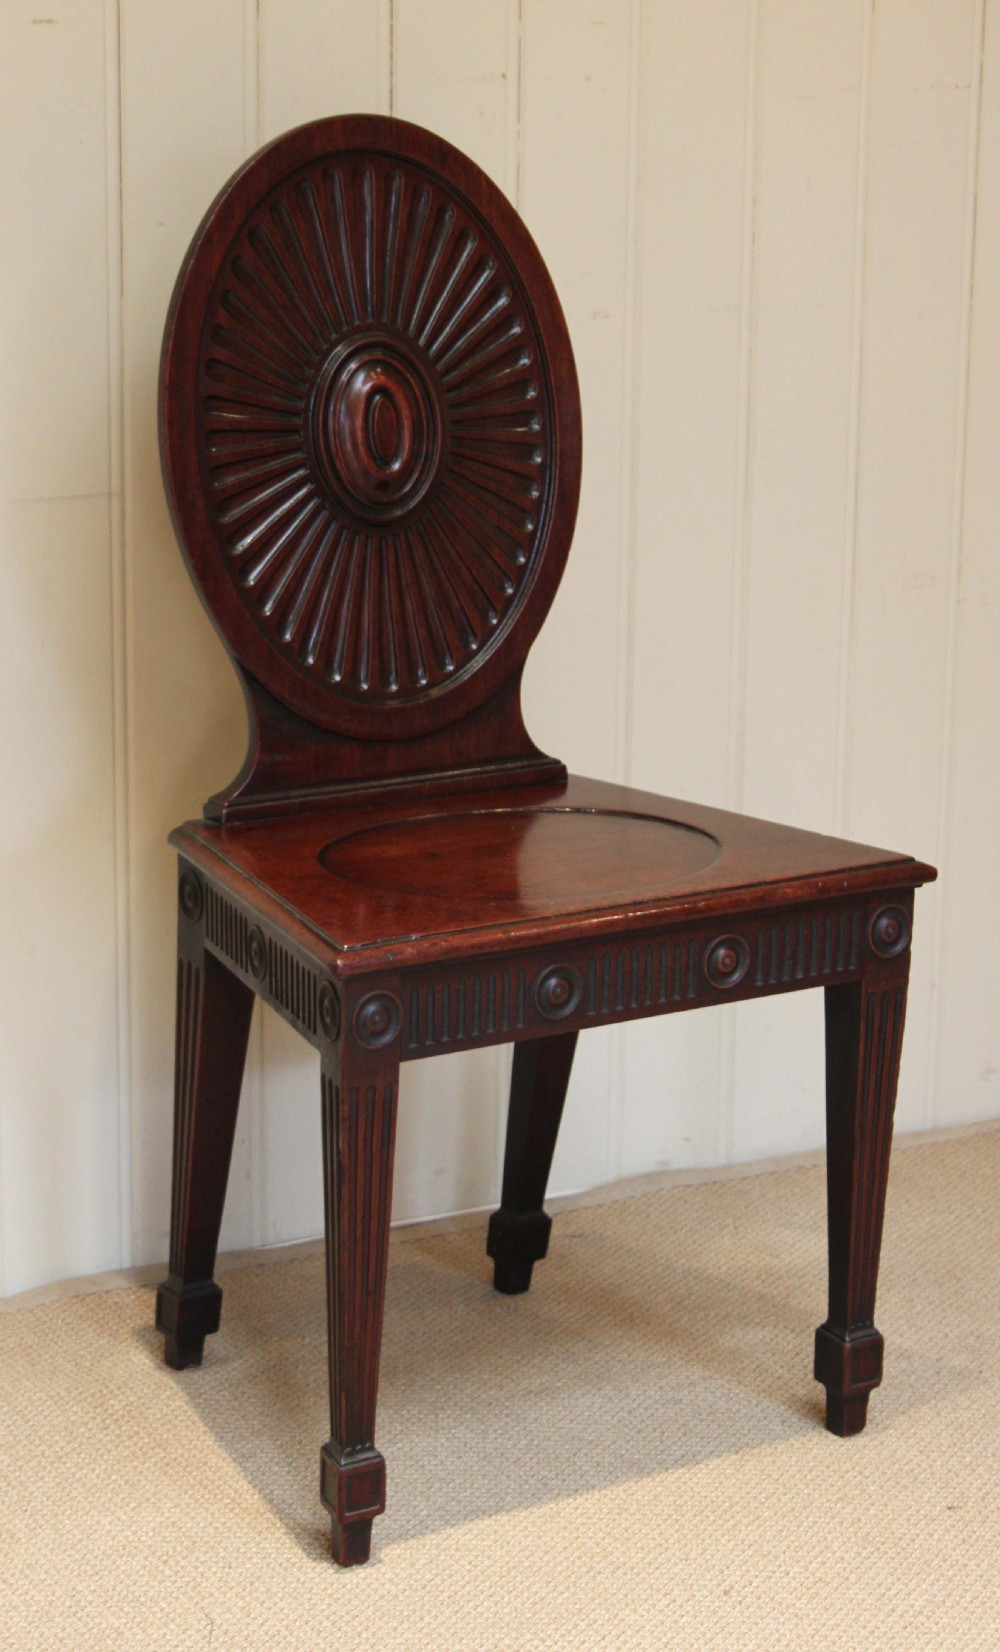 late georgian mahogany hall chair - Late Georgian Mahogany Hall Chair 268062 Sellingantiques.co.uk